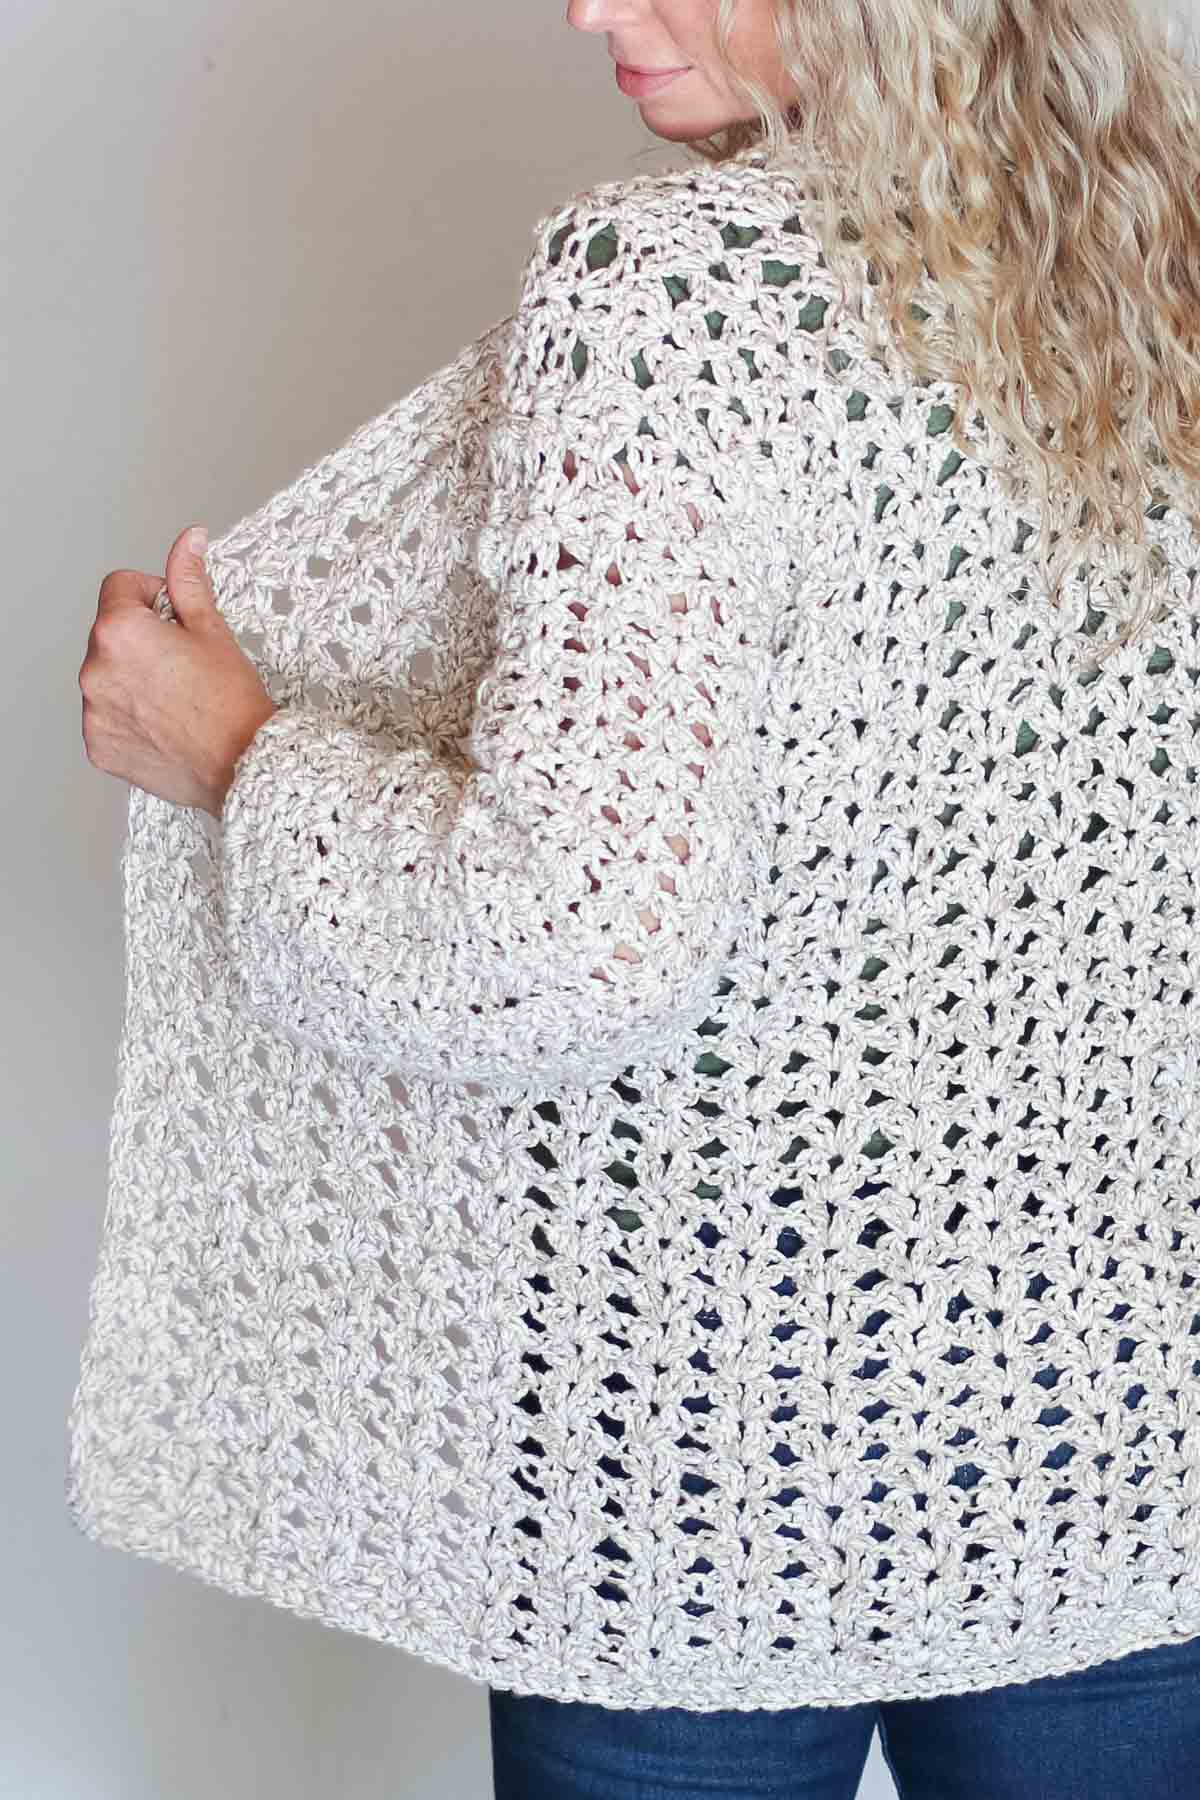 The back of a blonde woman wearing a casual crochet cardigan made with the iris stitch and Lion Brand Twisted Cotton Blend yarn.